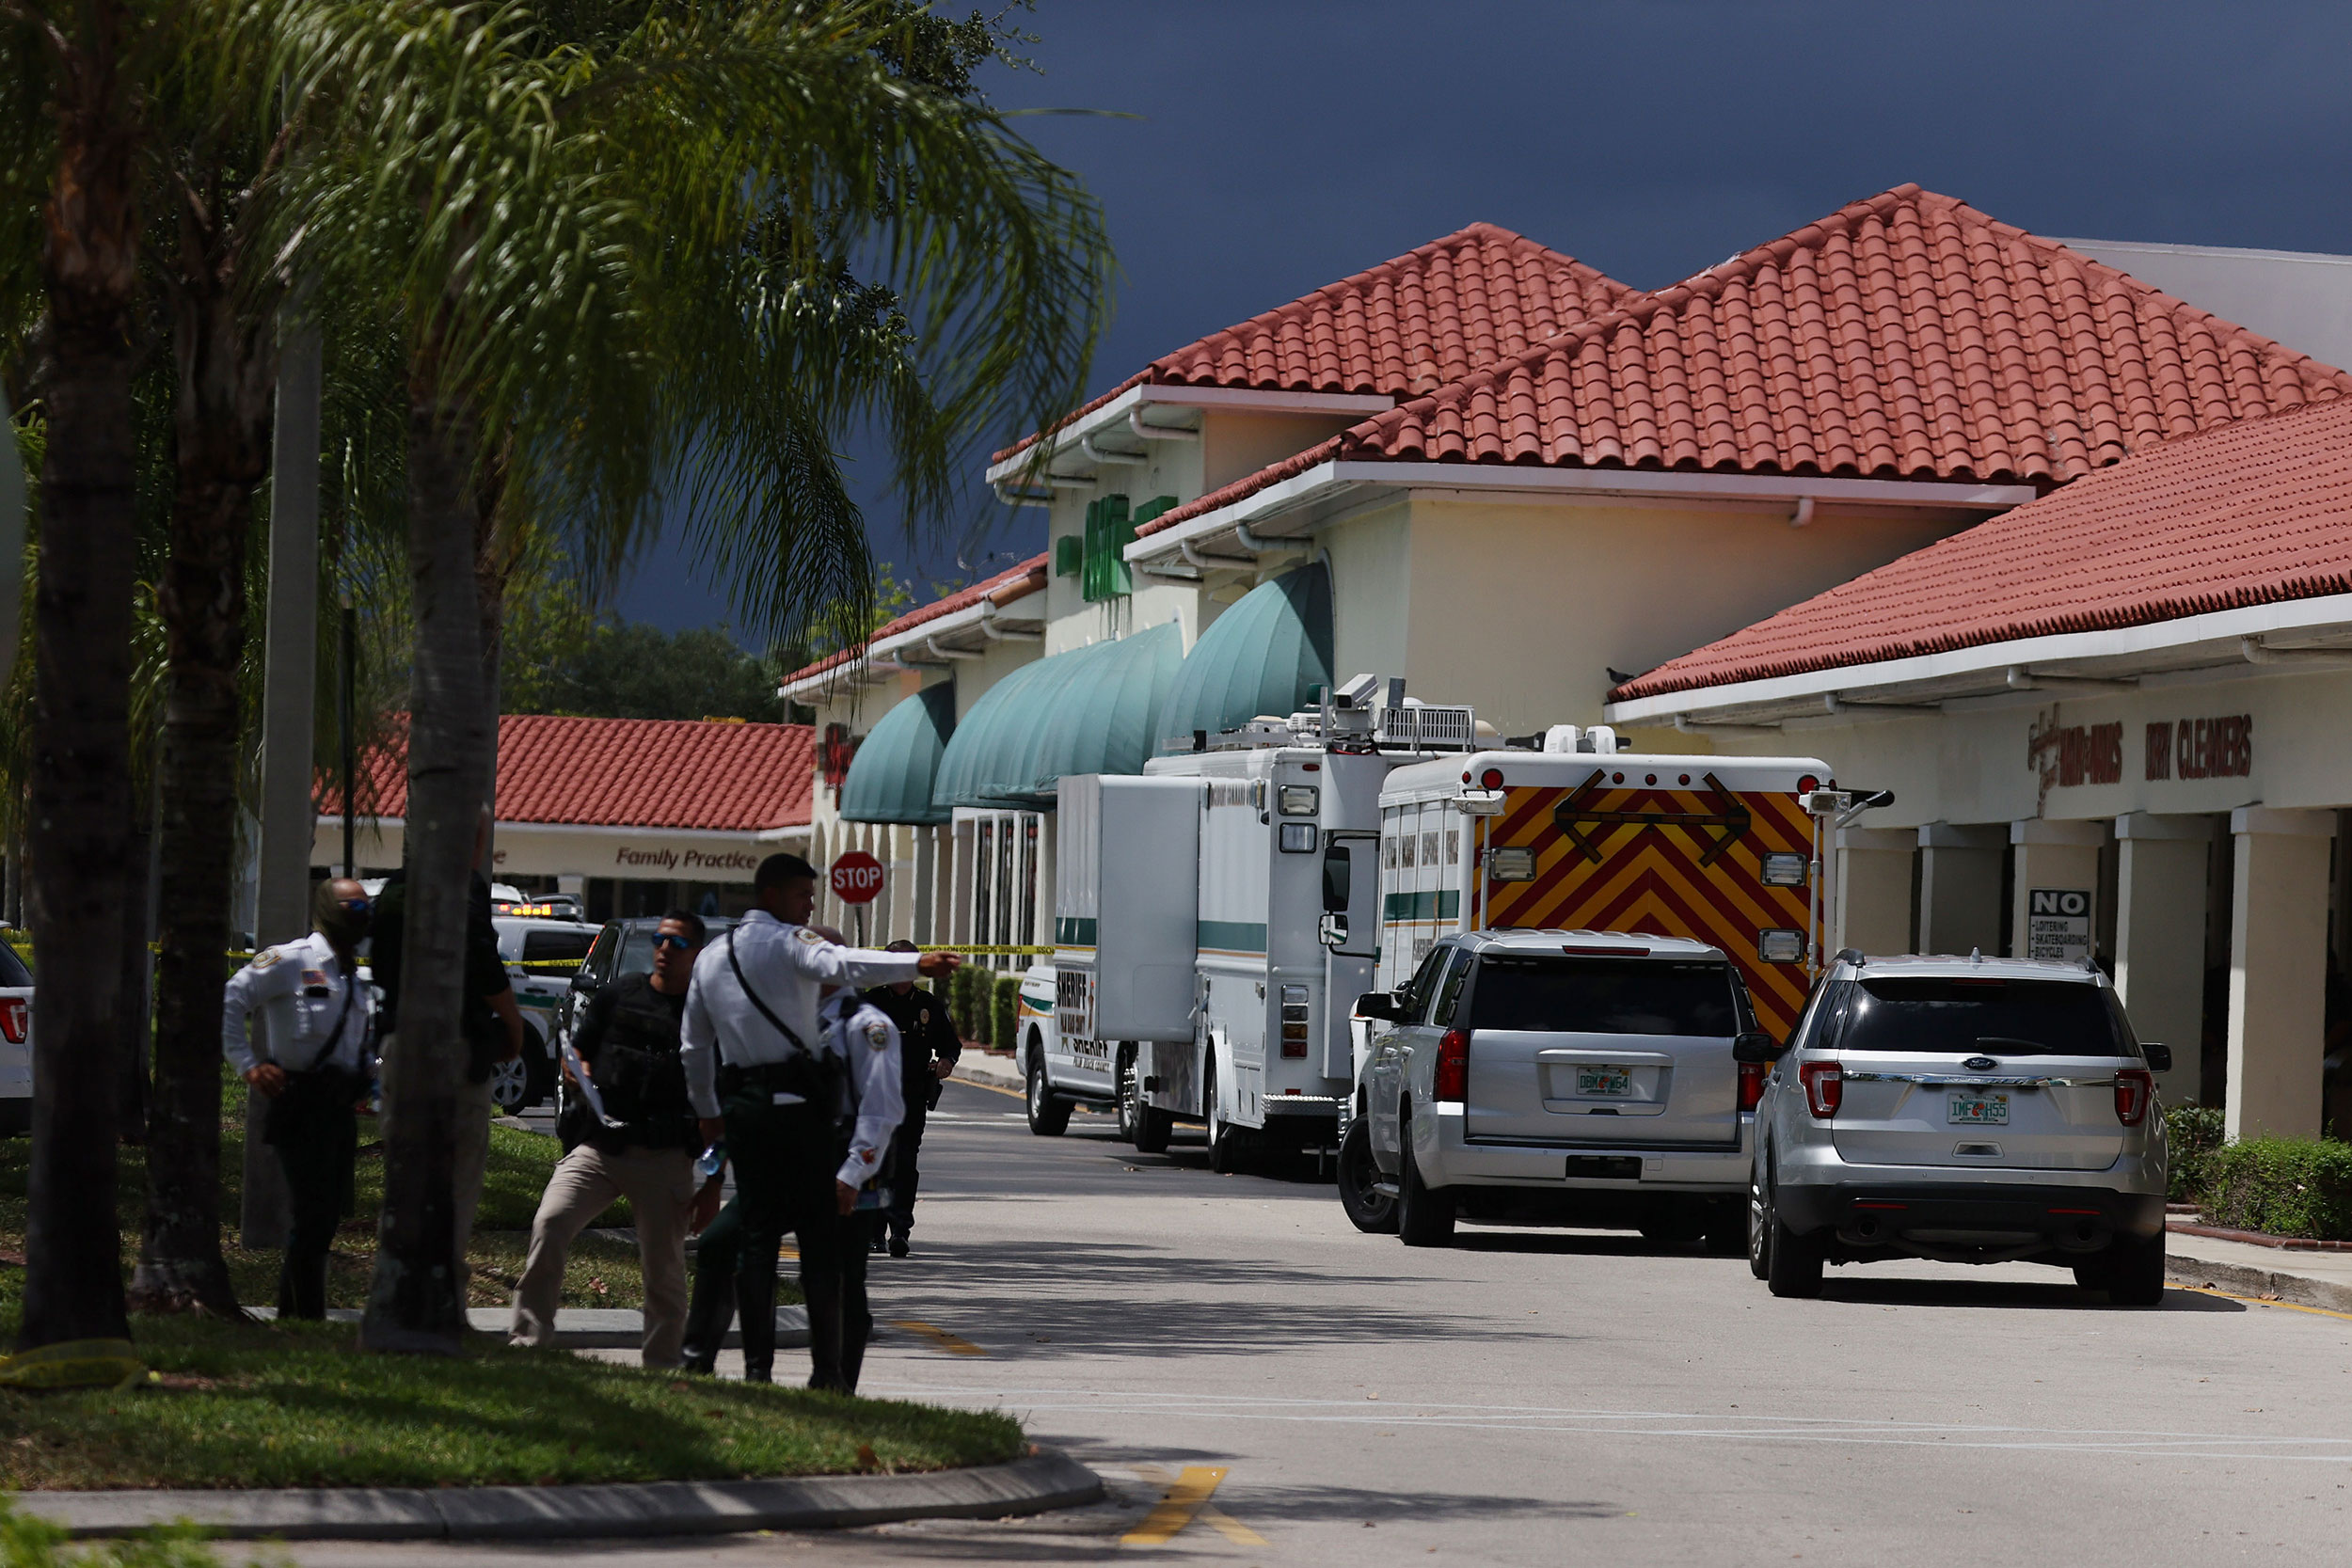 Gunman in Florida grocery store shot baby first before killing grandmother, investigator says